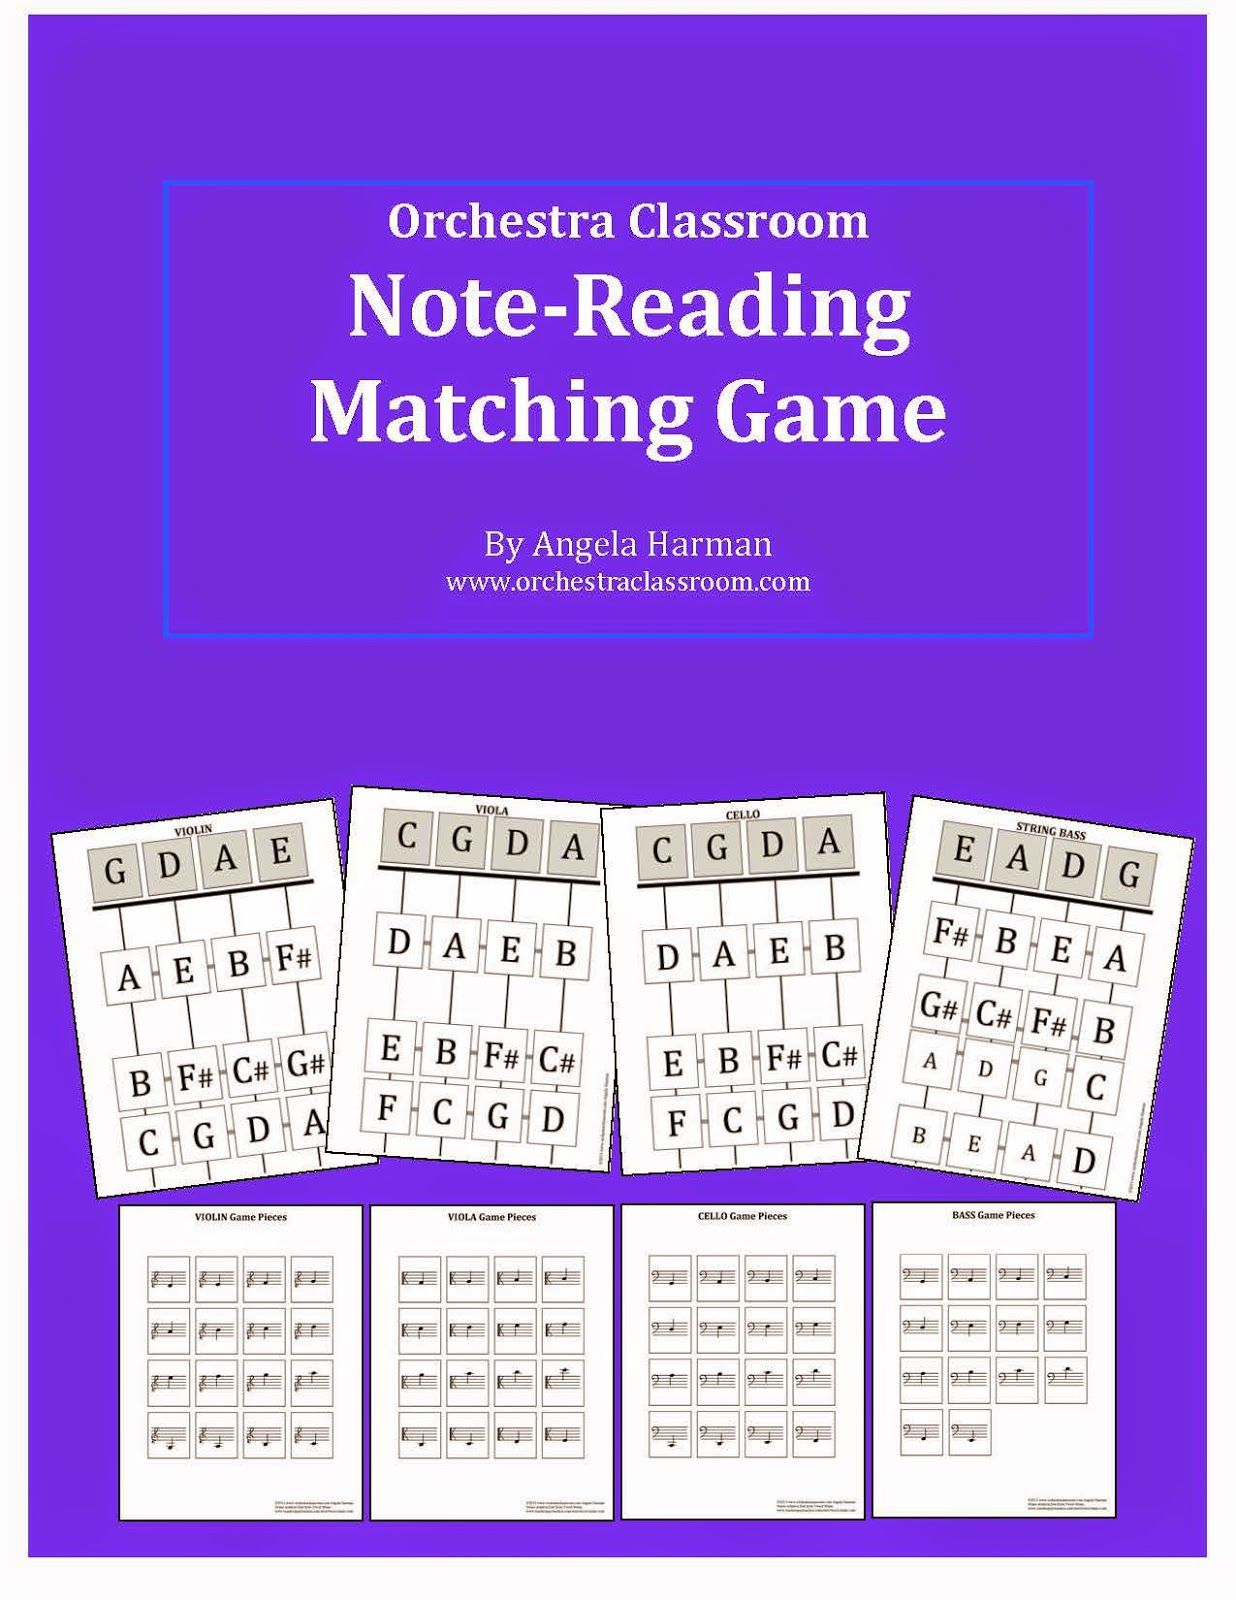 New Note Reading Matching Game For The Orchestra Classroom